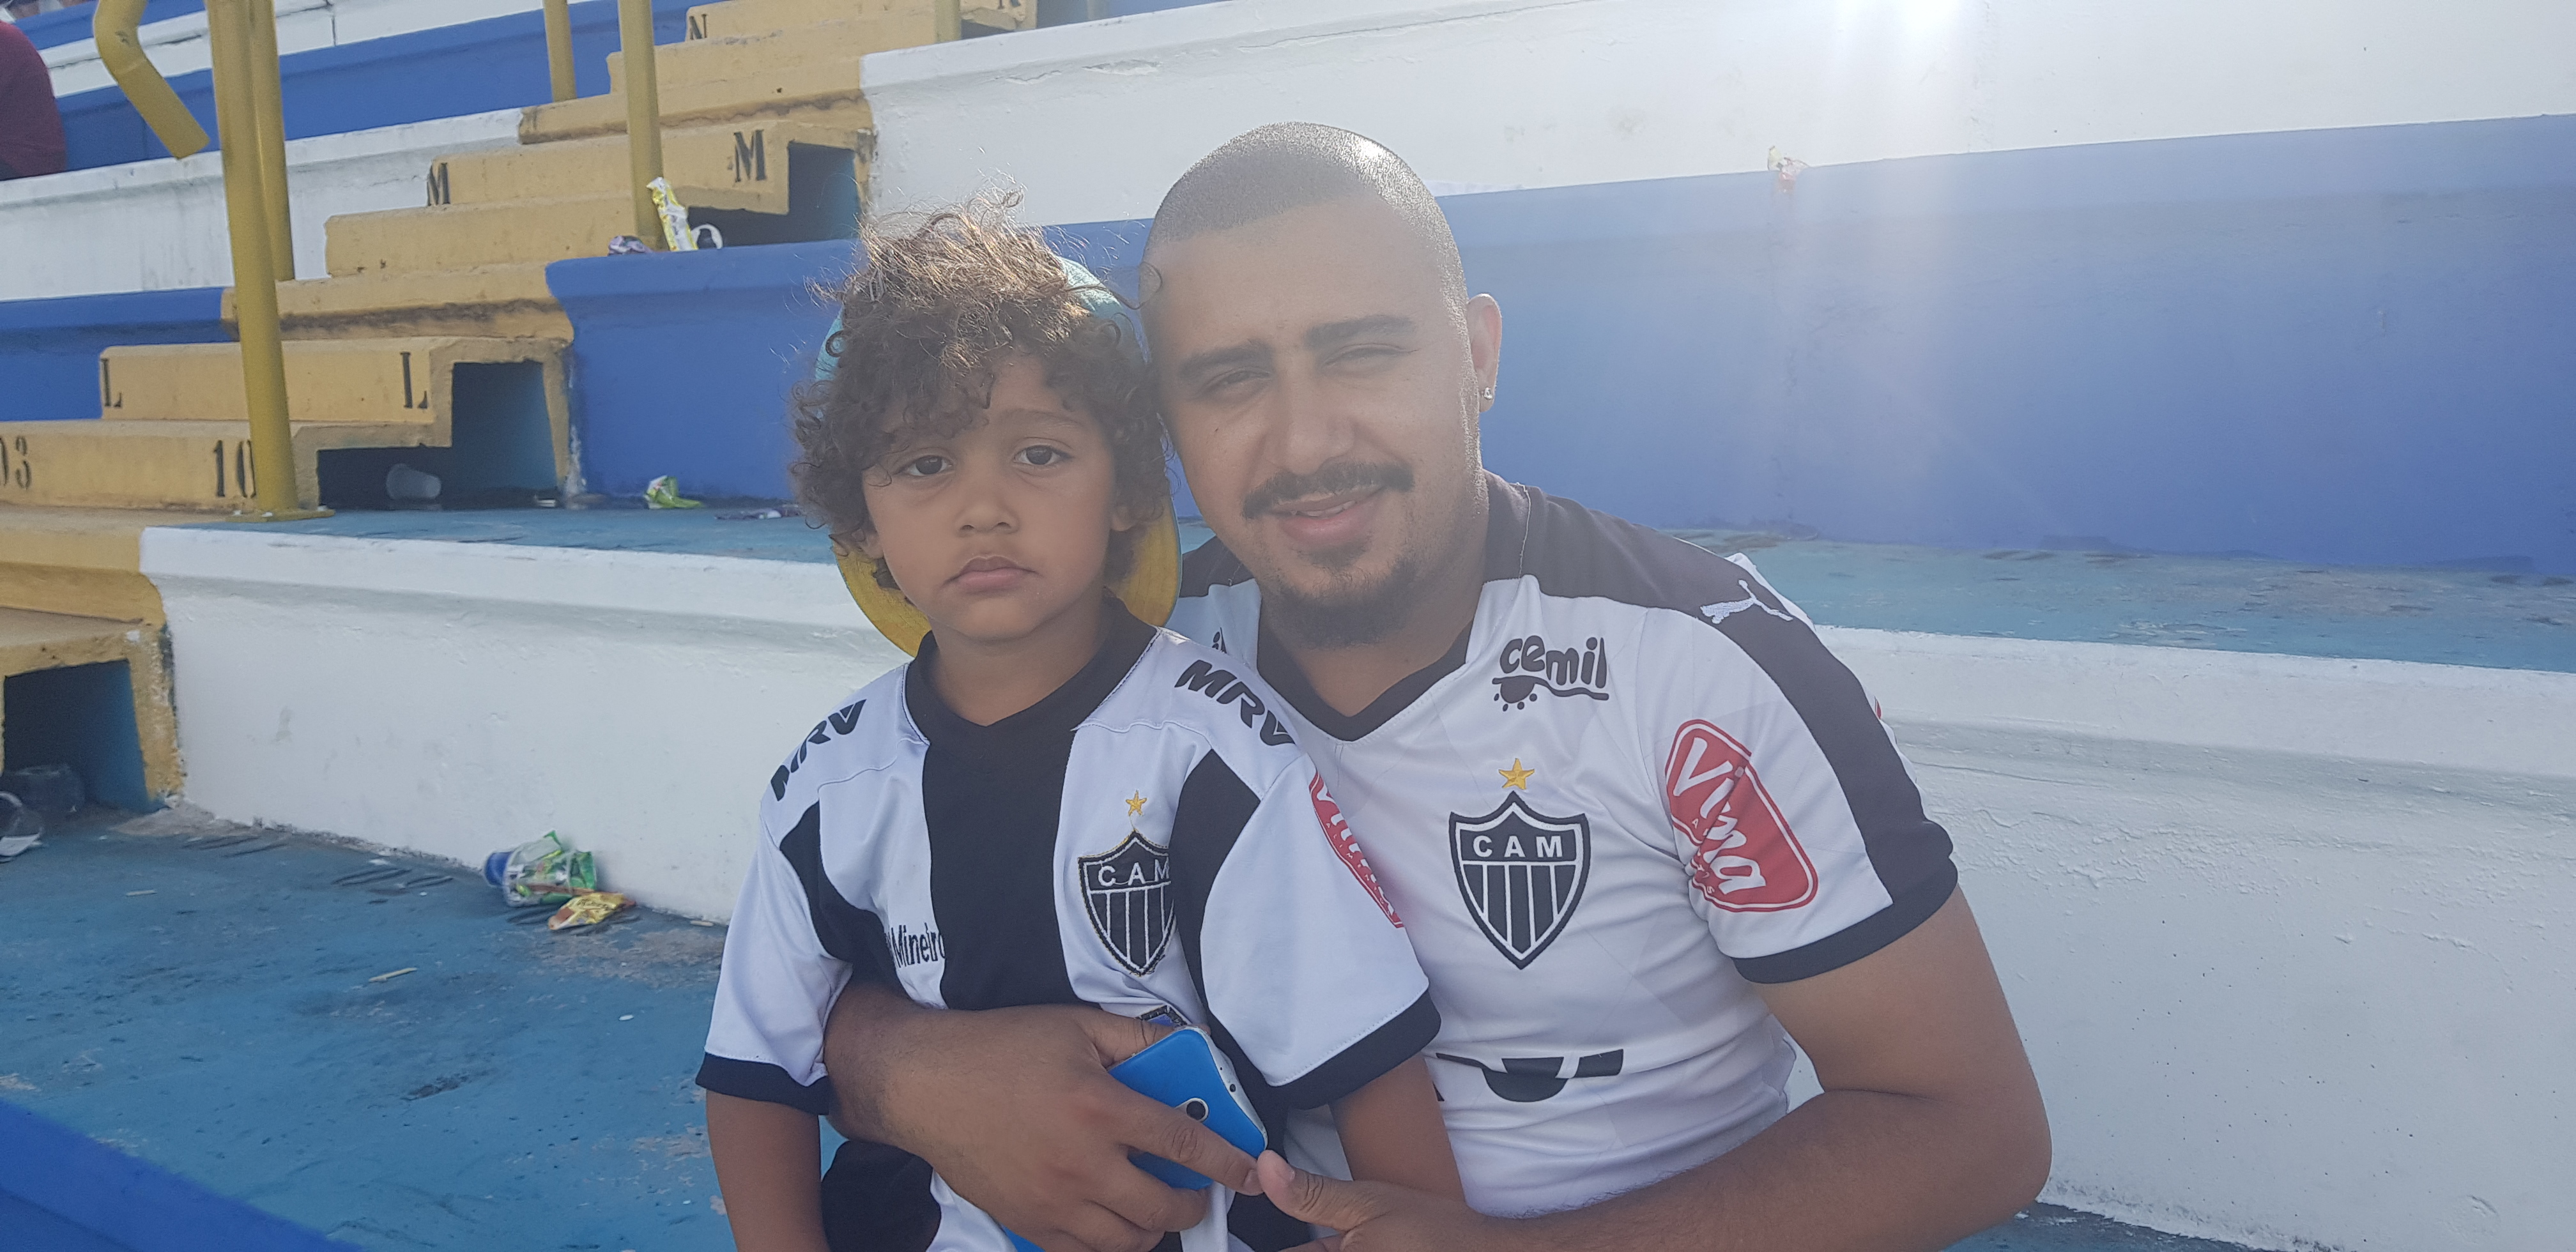 Wesley Alves Pereira, 27, came to watch Copinha at the Diadema stadium, with his son Victor